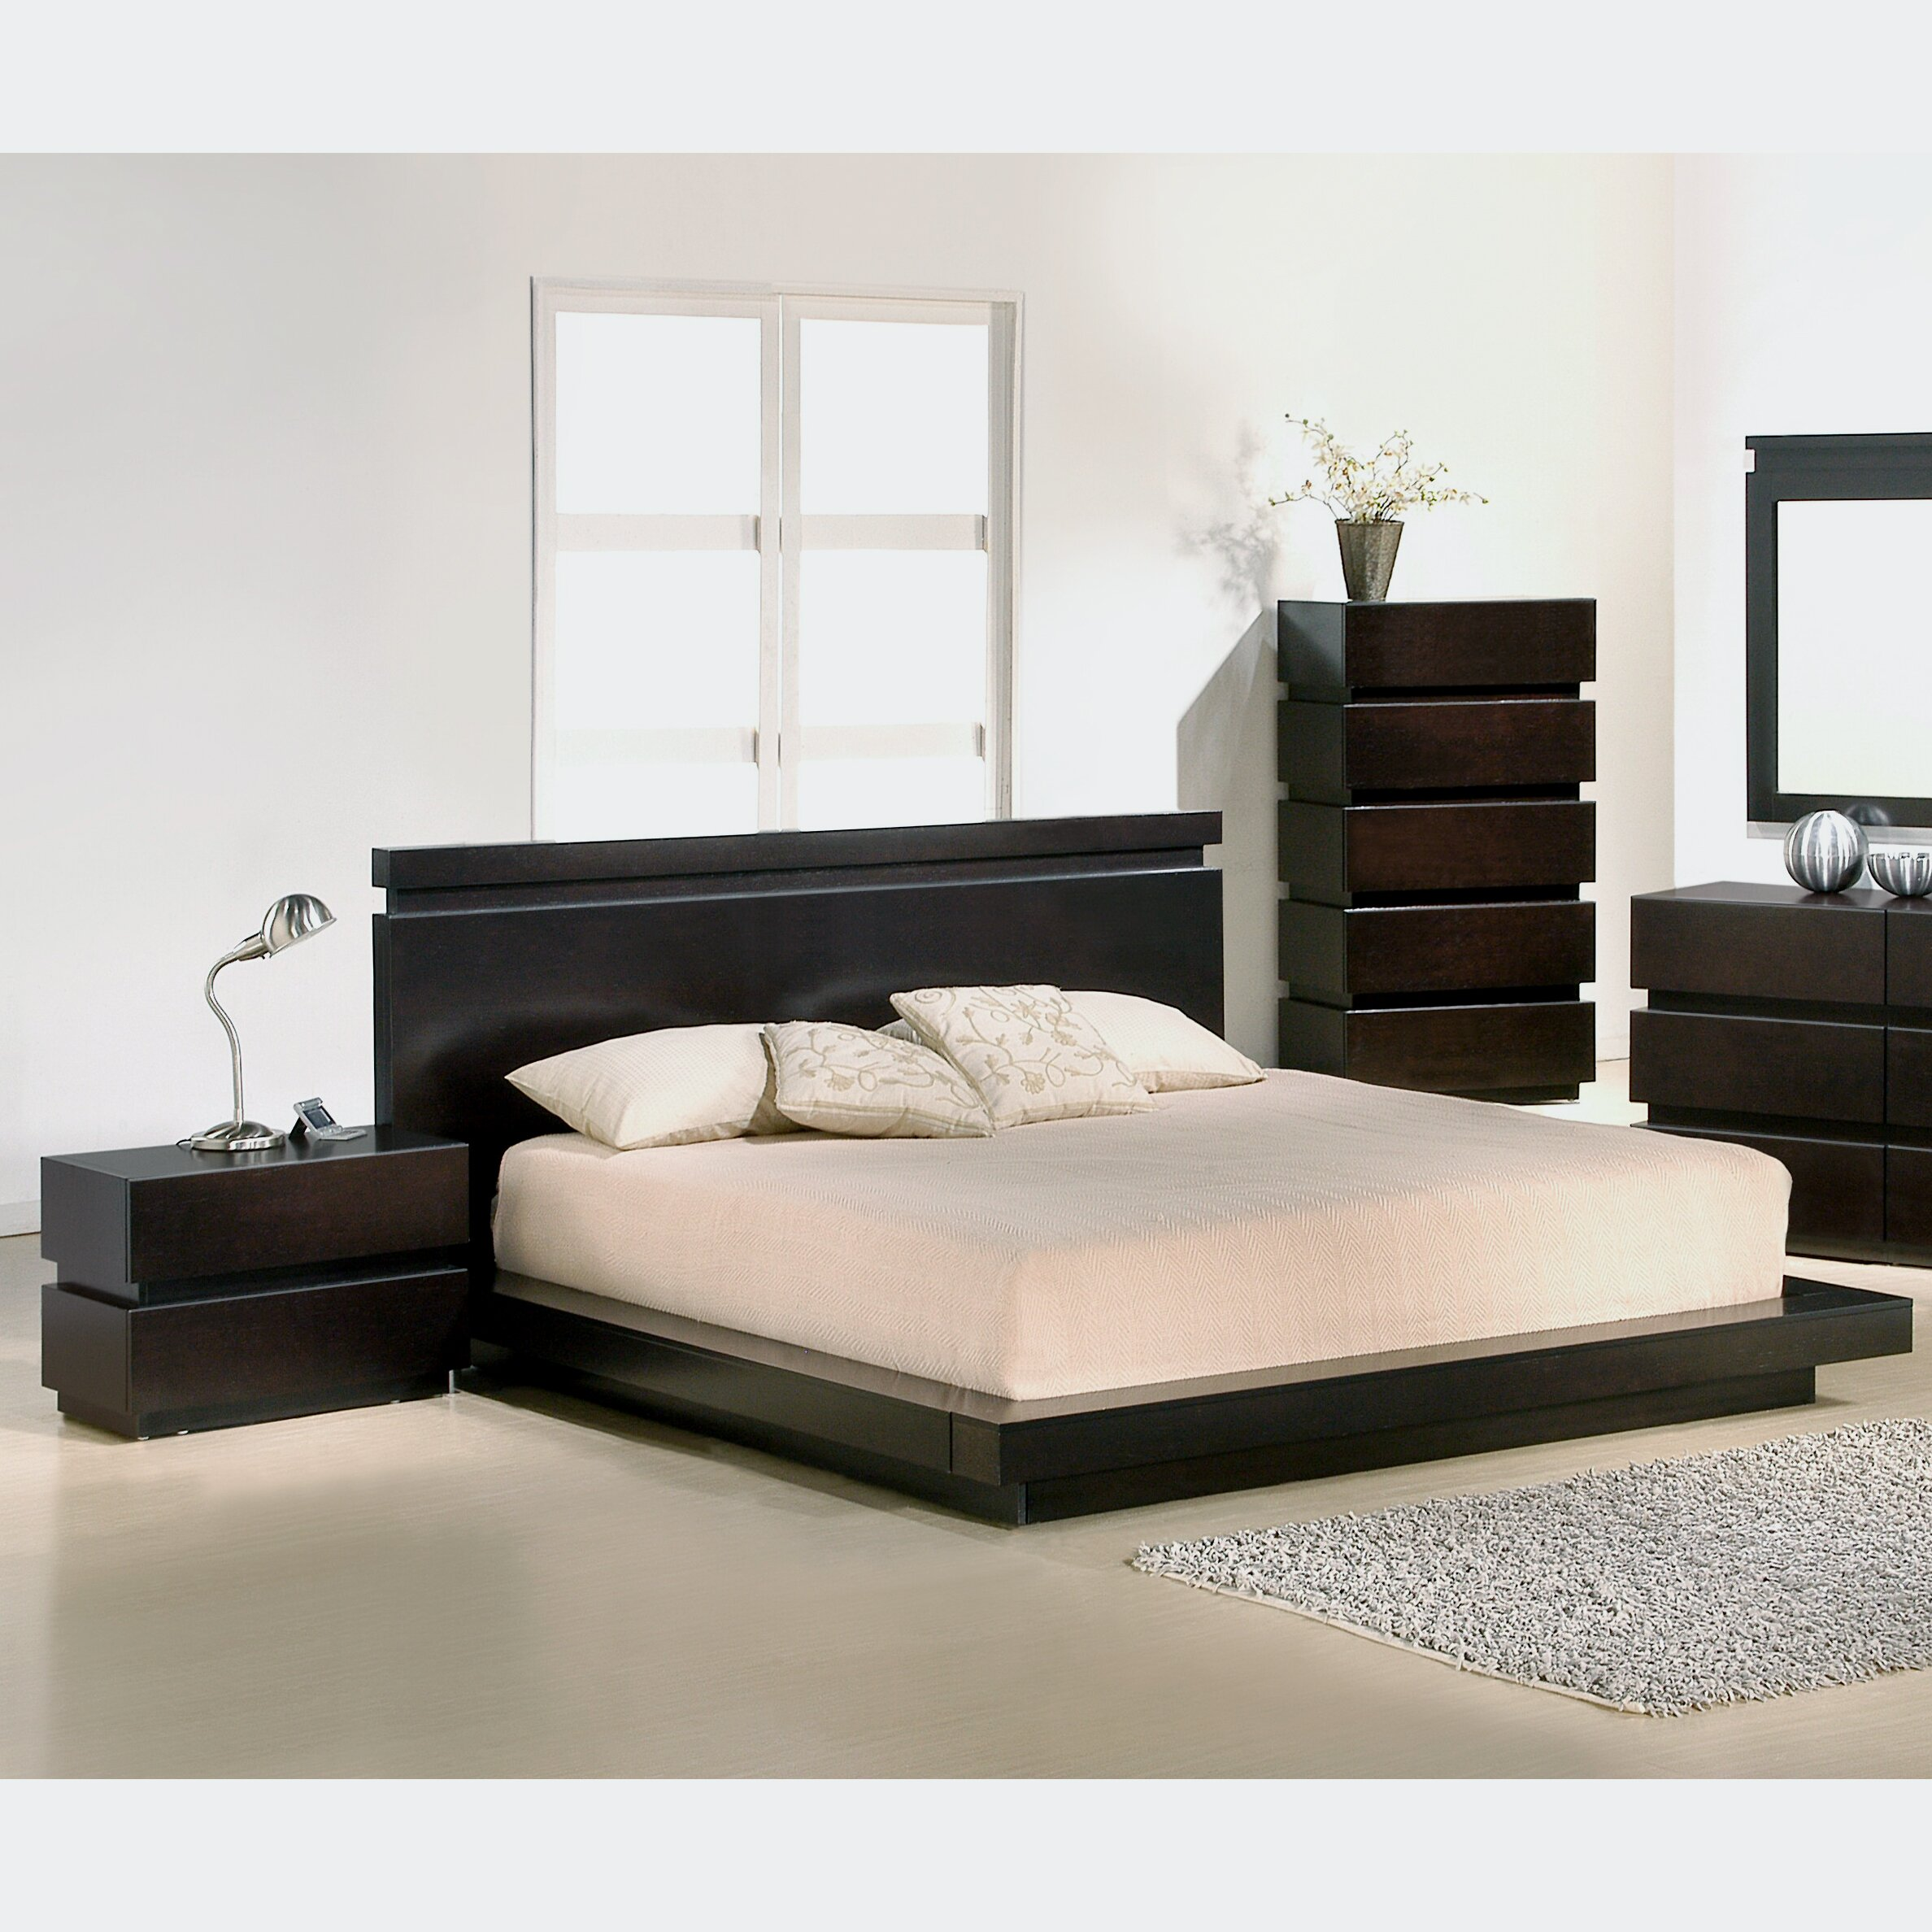 J m furniture knotch platform customizable bedroom set for M s bedroom furniture